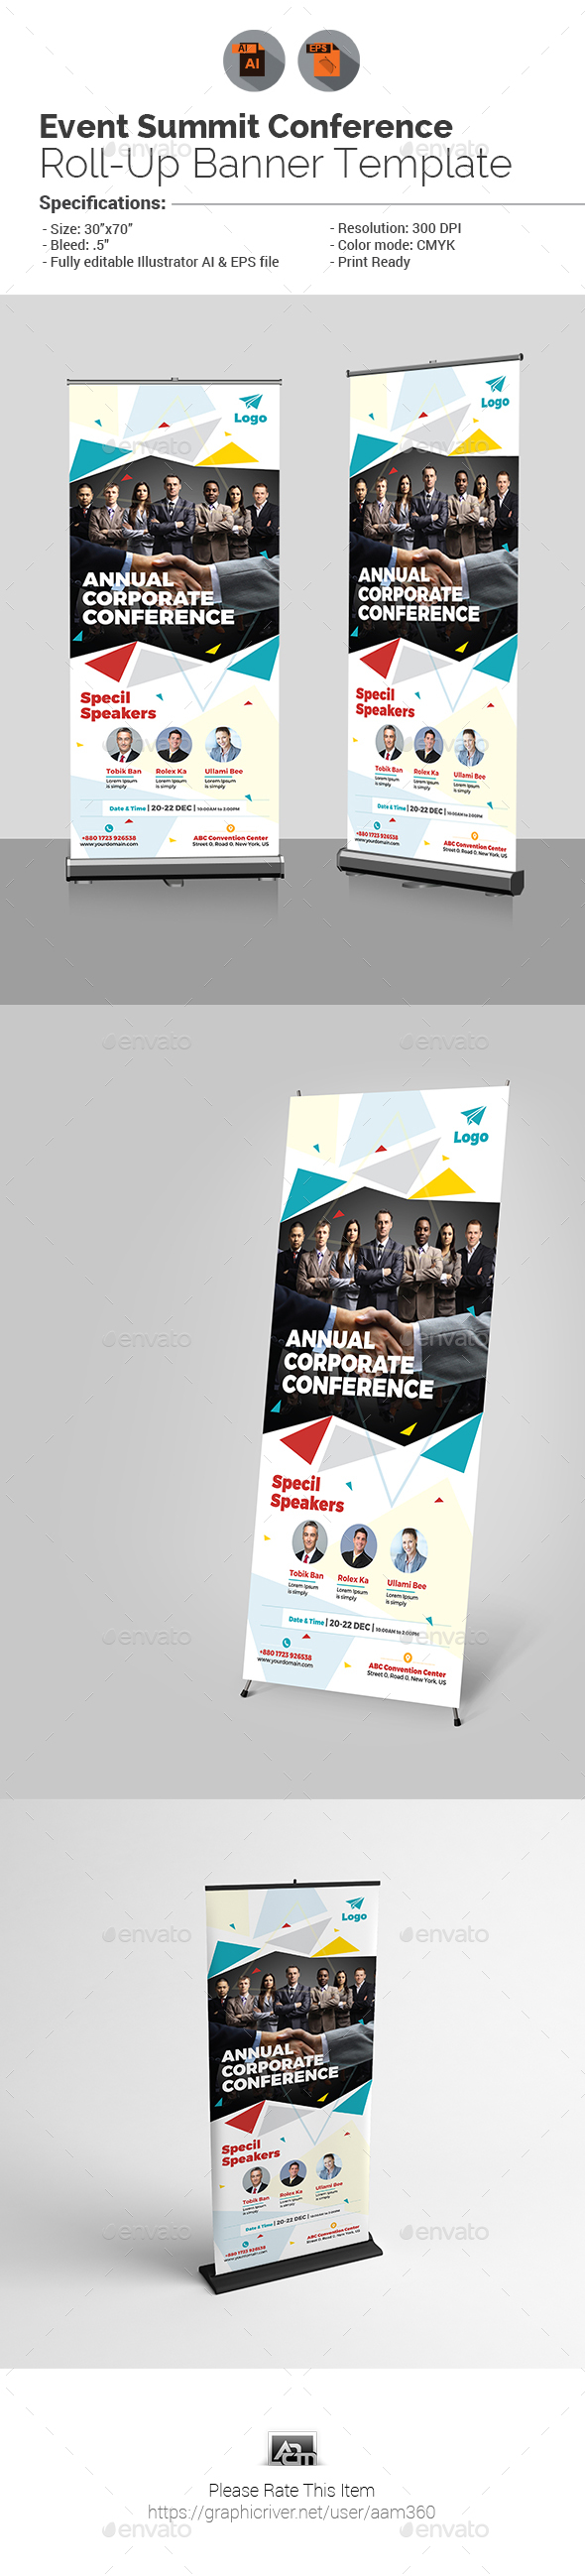 Conference Roll-up Banner Graphics, Designs & Templates